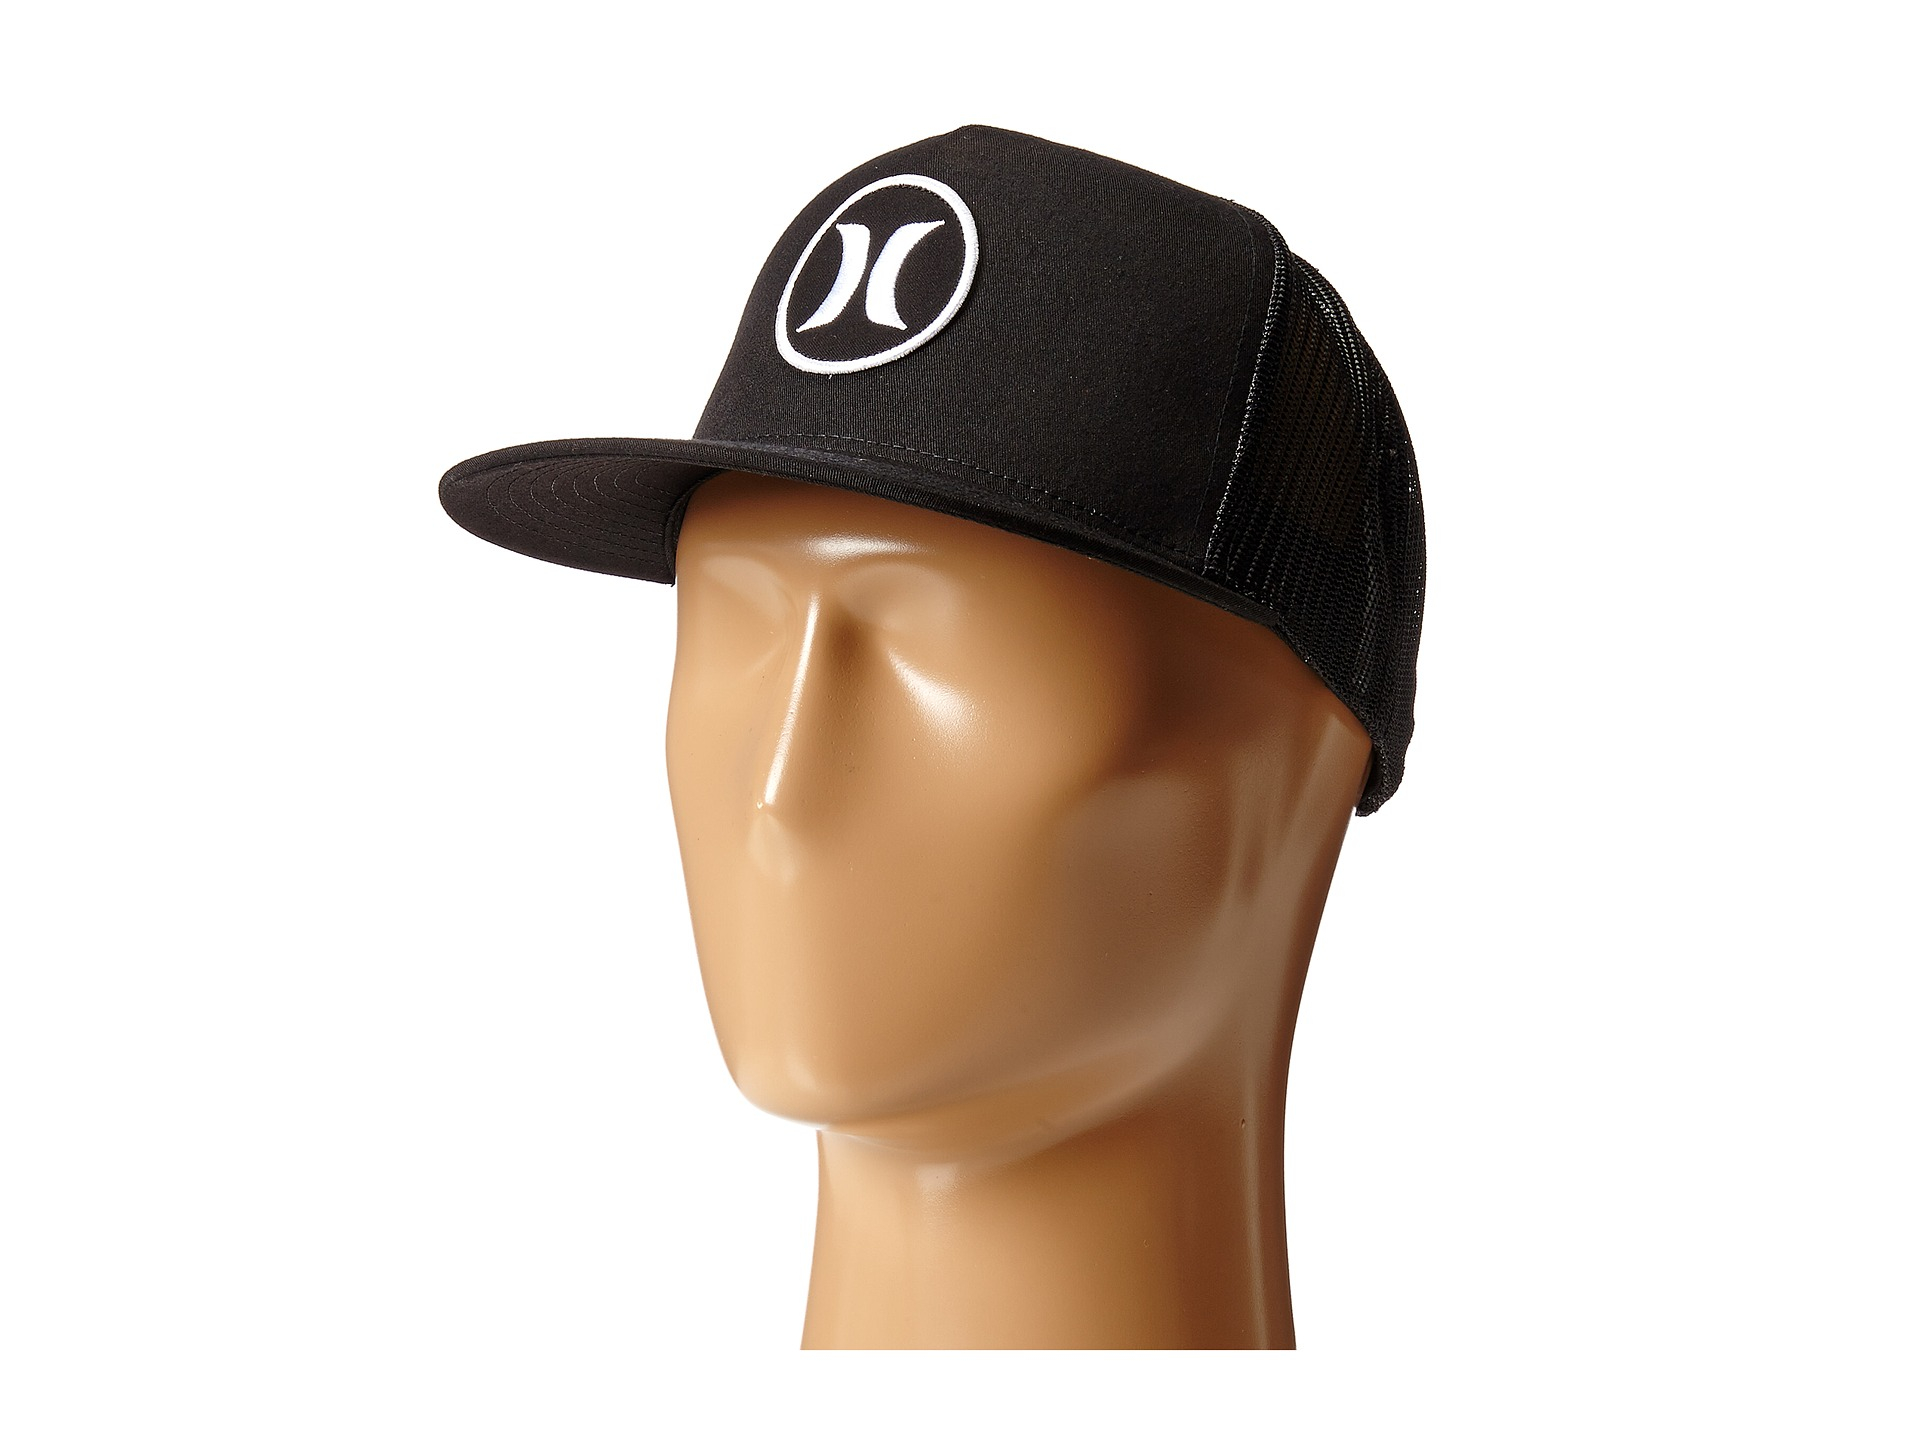 Lyst - Hurley Block Party Movement Trucker Hat in Black for Men 04ee53e8e3f5